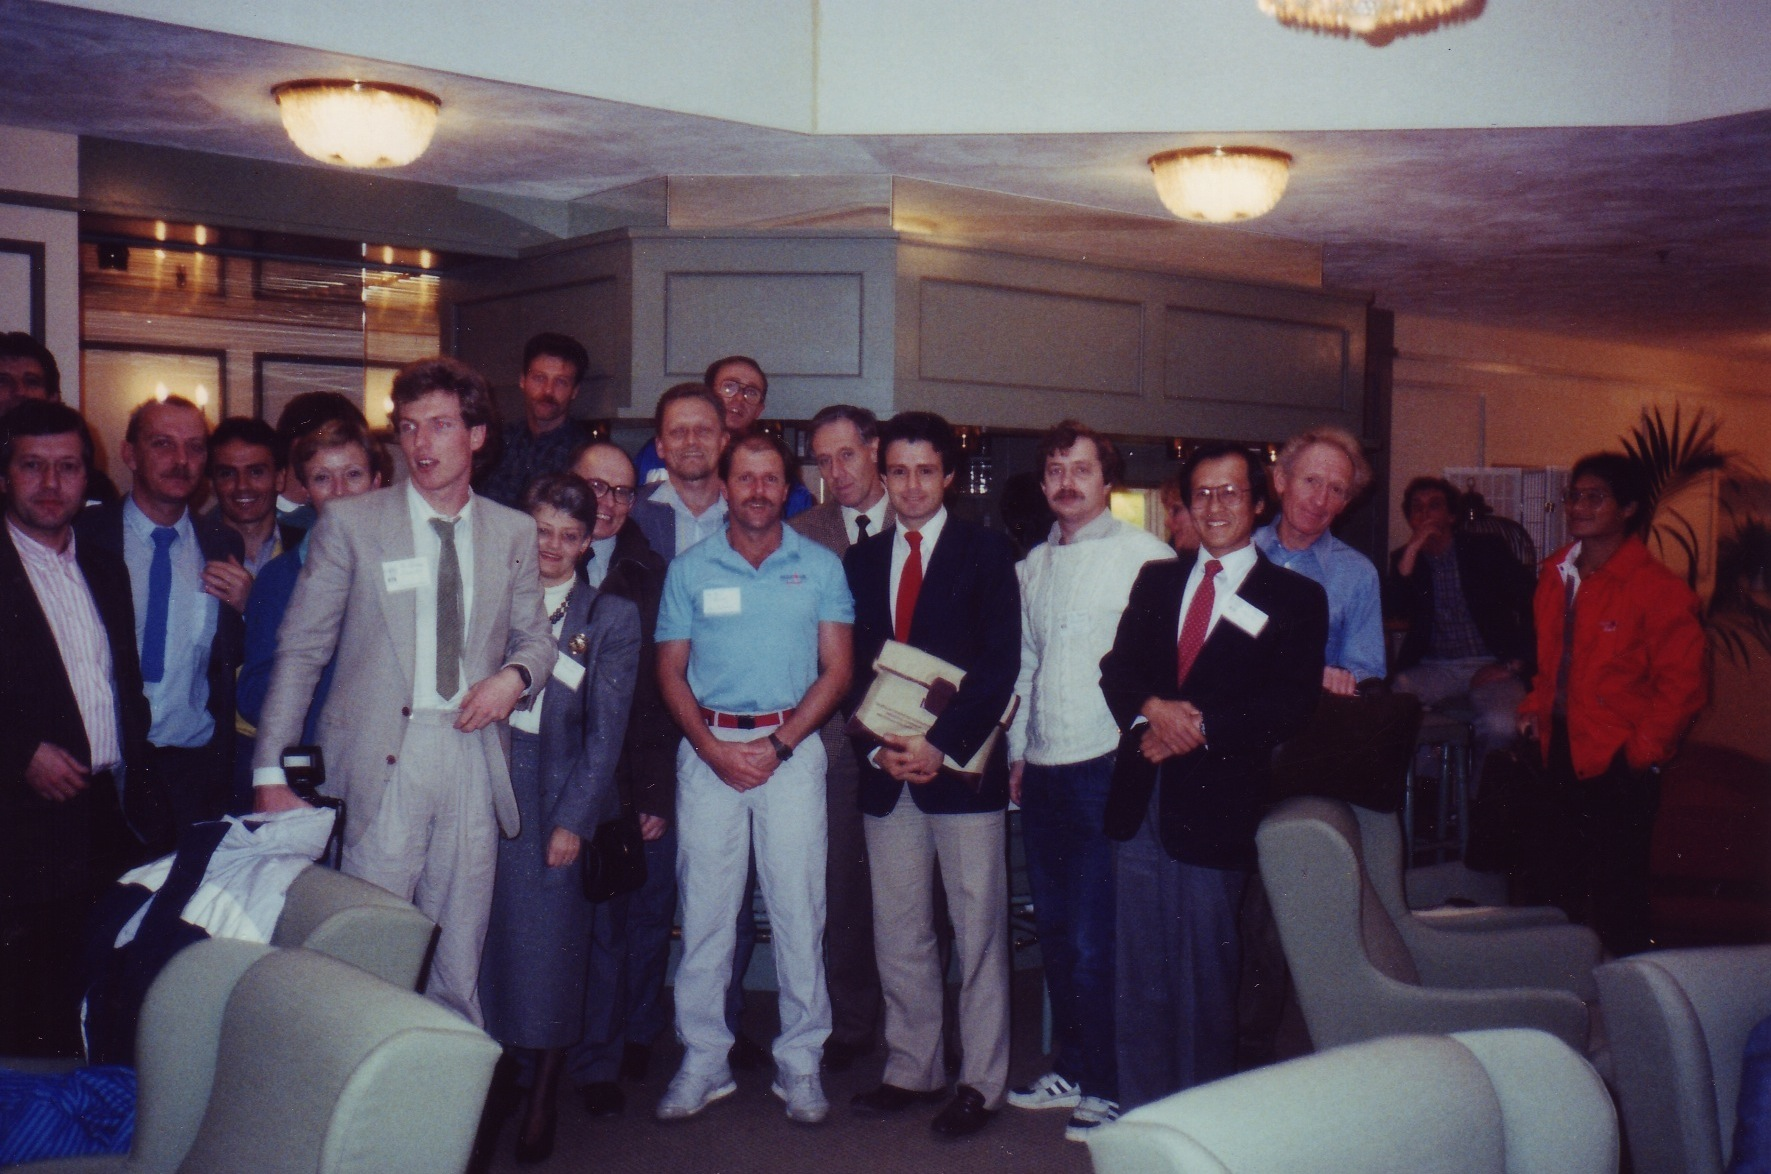 A group photo I took at the end of the conference. Far right is Earl Yamaguchi (Hawaiian Ironman). Third from right (in blue) is Les MacDonald of Canada.